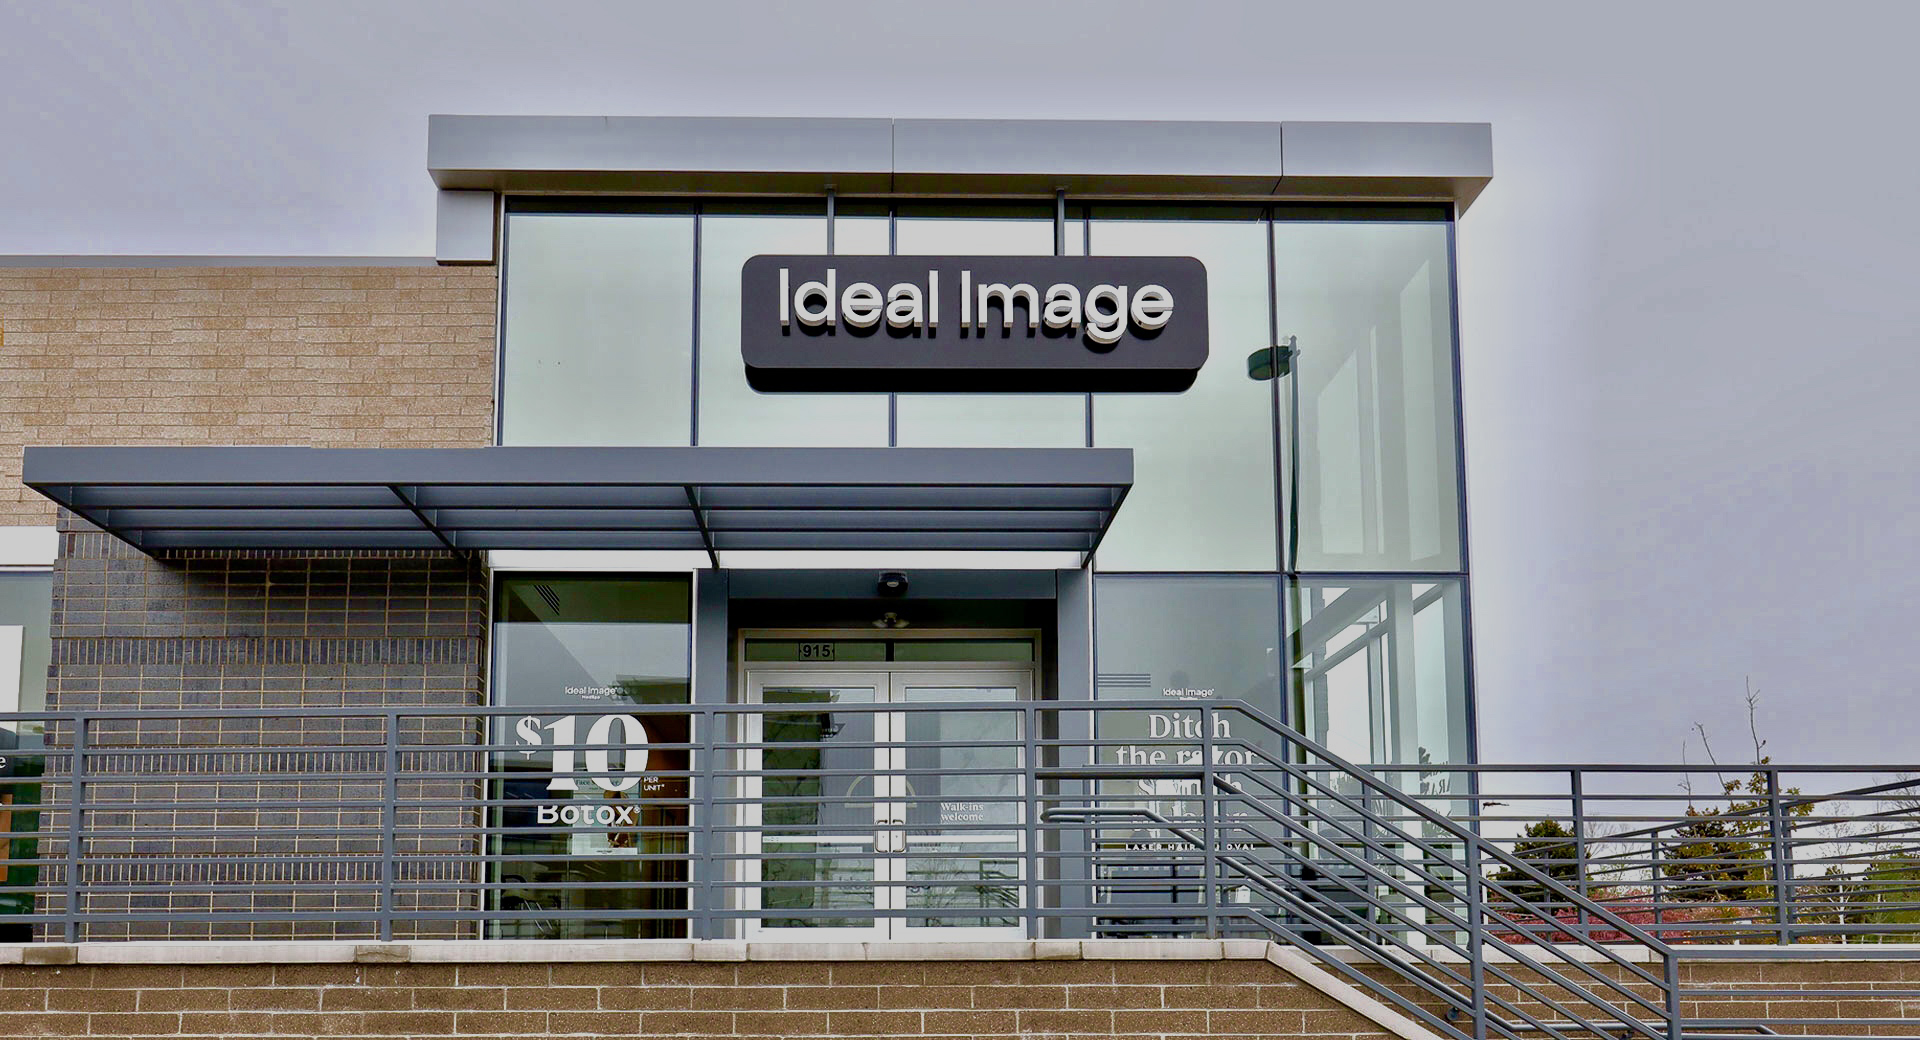 Ideal Image Selects Intalytics to Assist with New Market Expansion